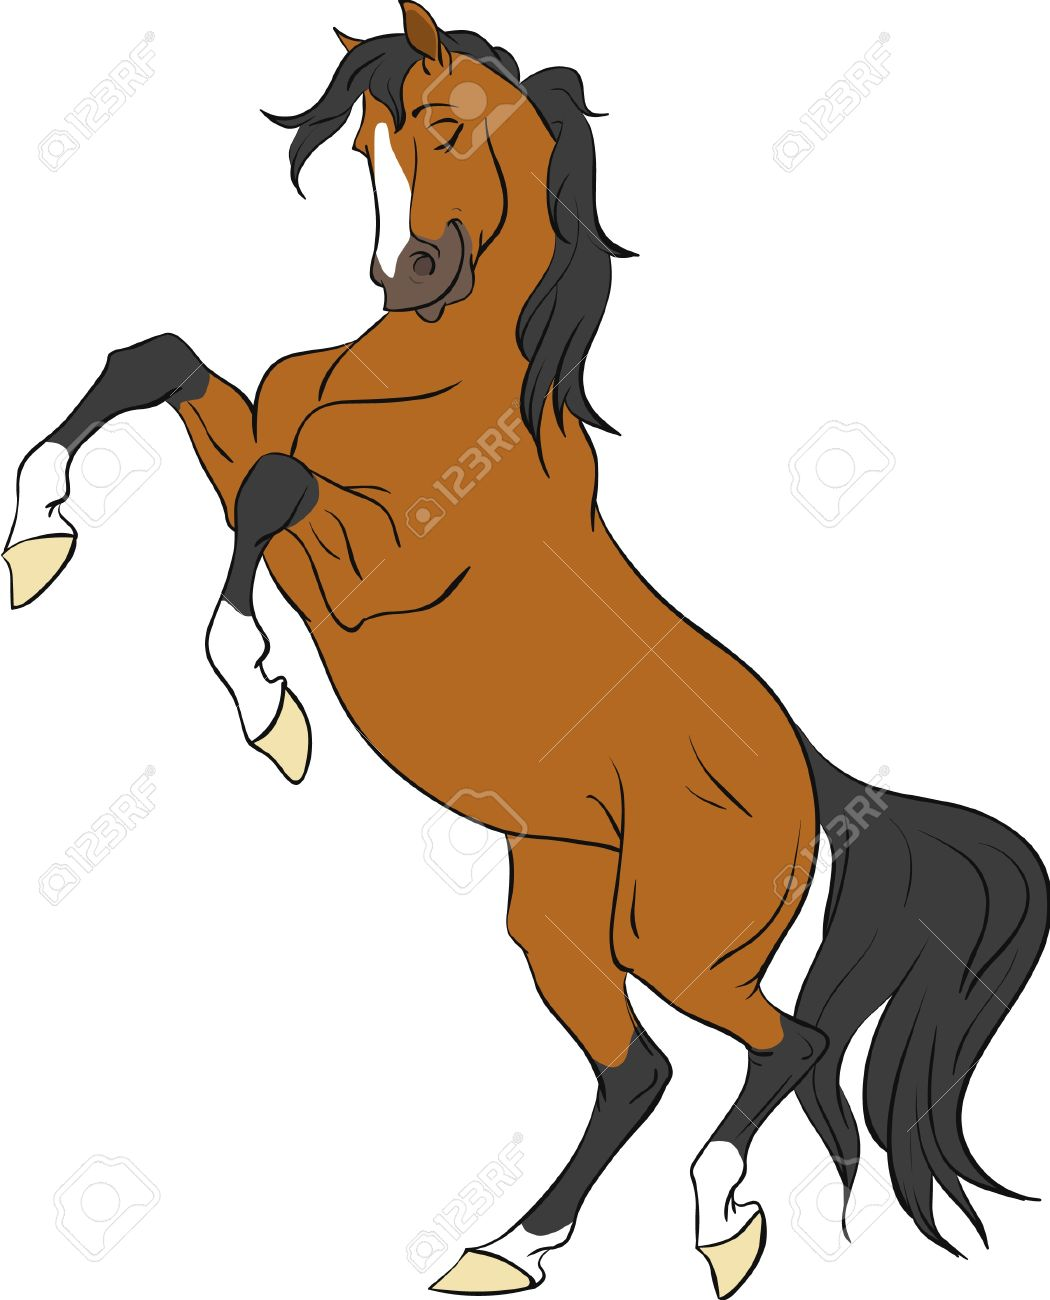 Horse rearing up and man clipart.